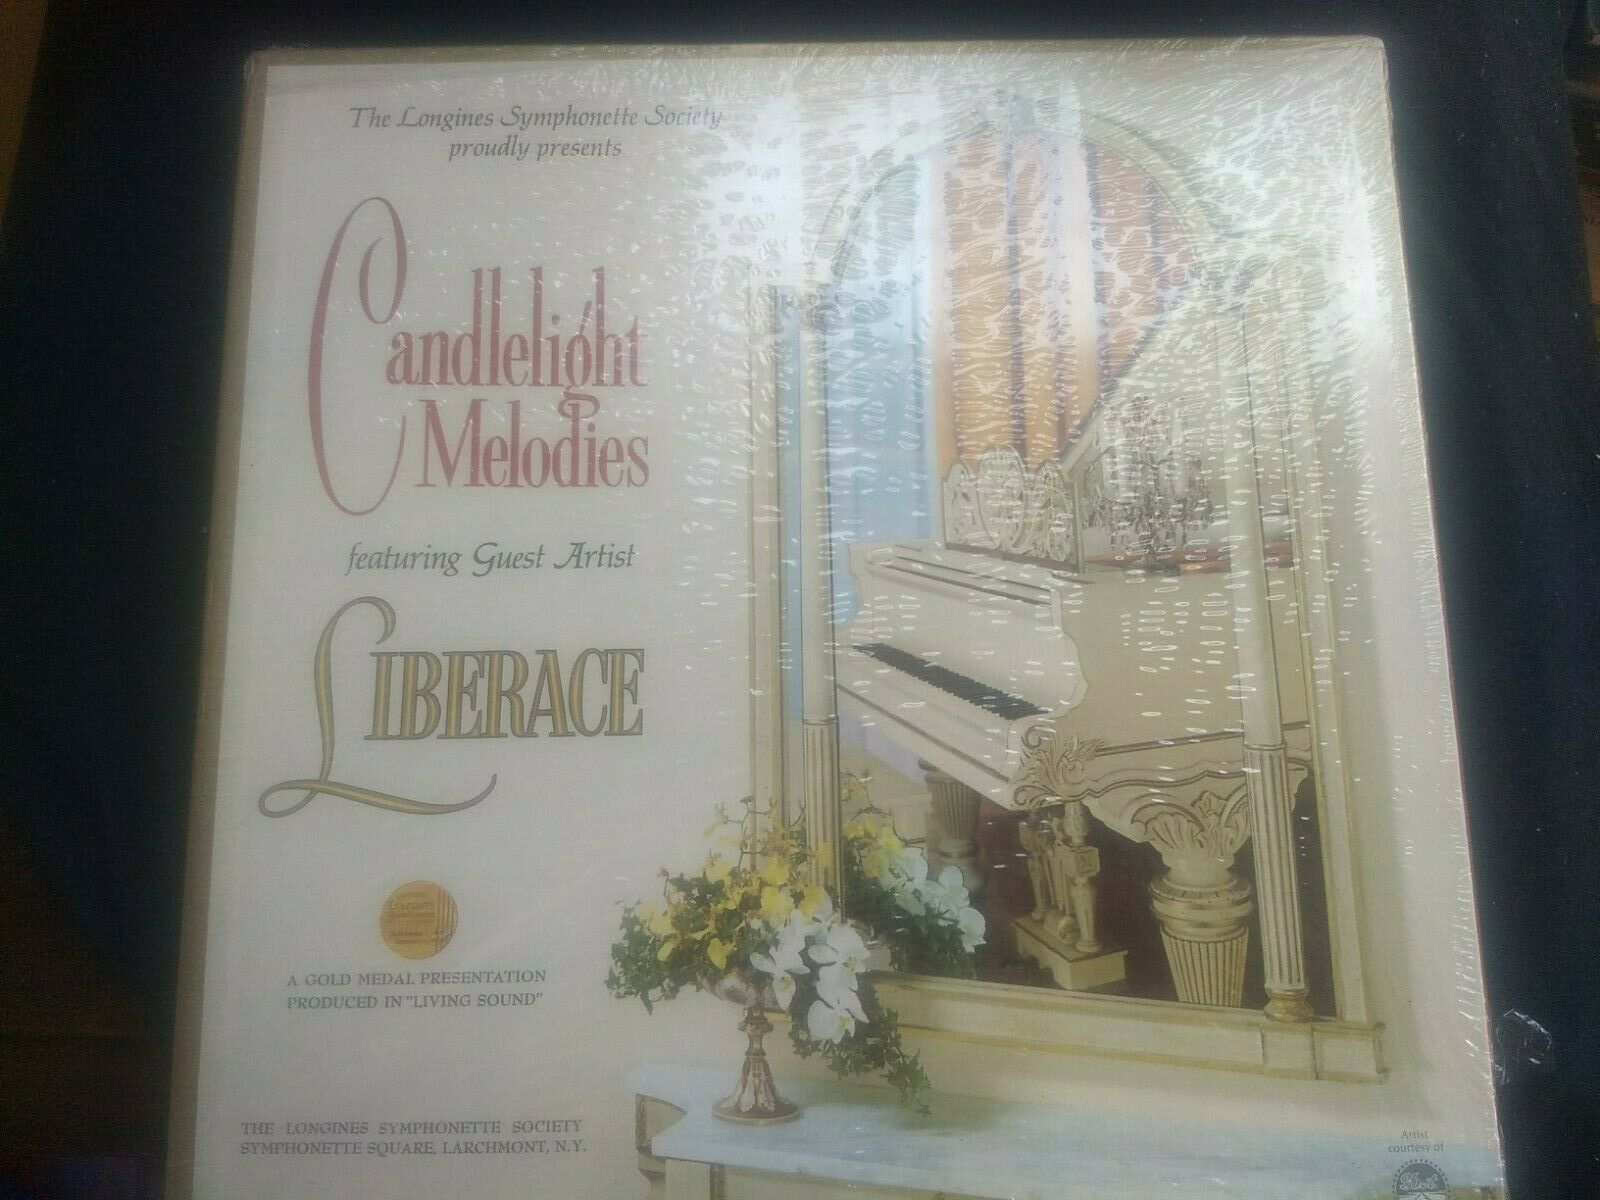 4 LP BOXED SET SHRINK-WRAPPED LIBERACE CANDLELIGHT MEMORYS PIANO MUSIC - $21.90